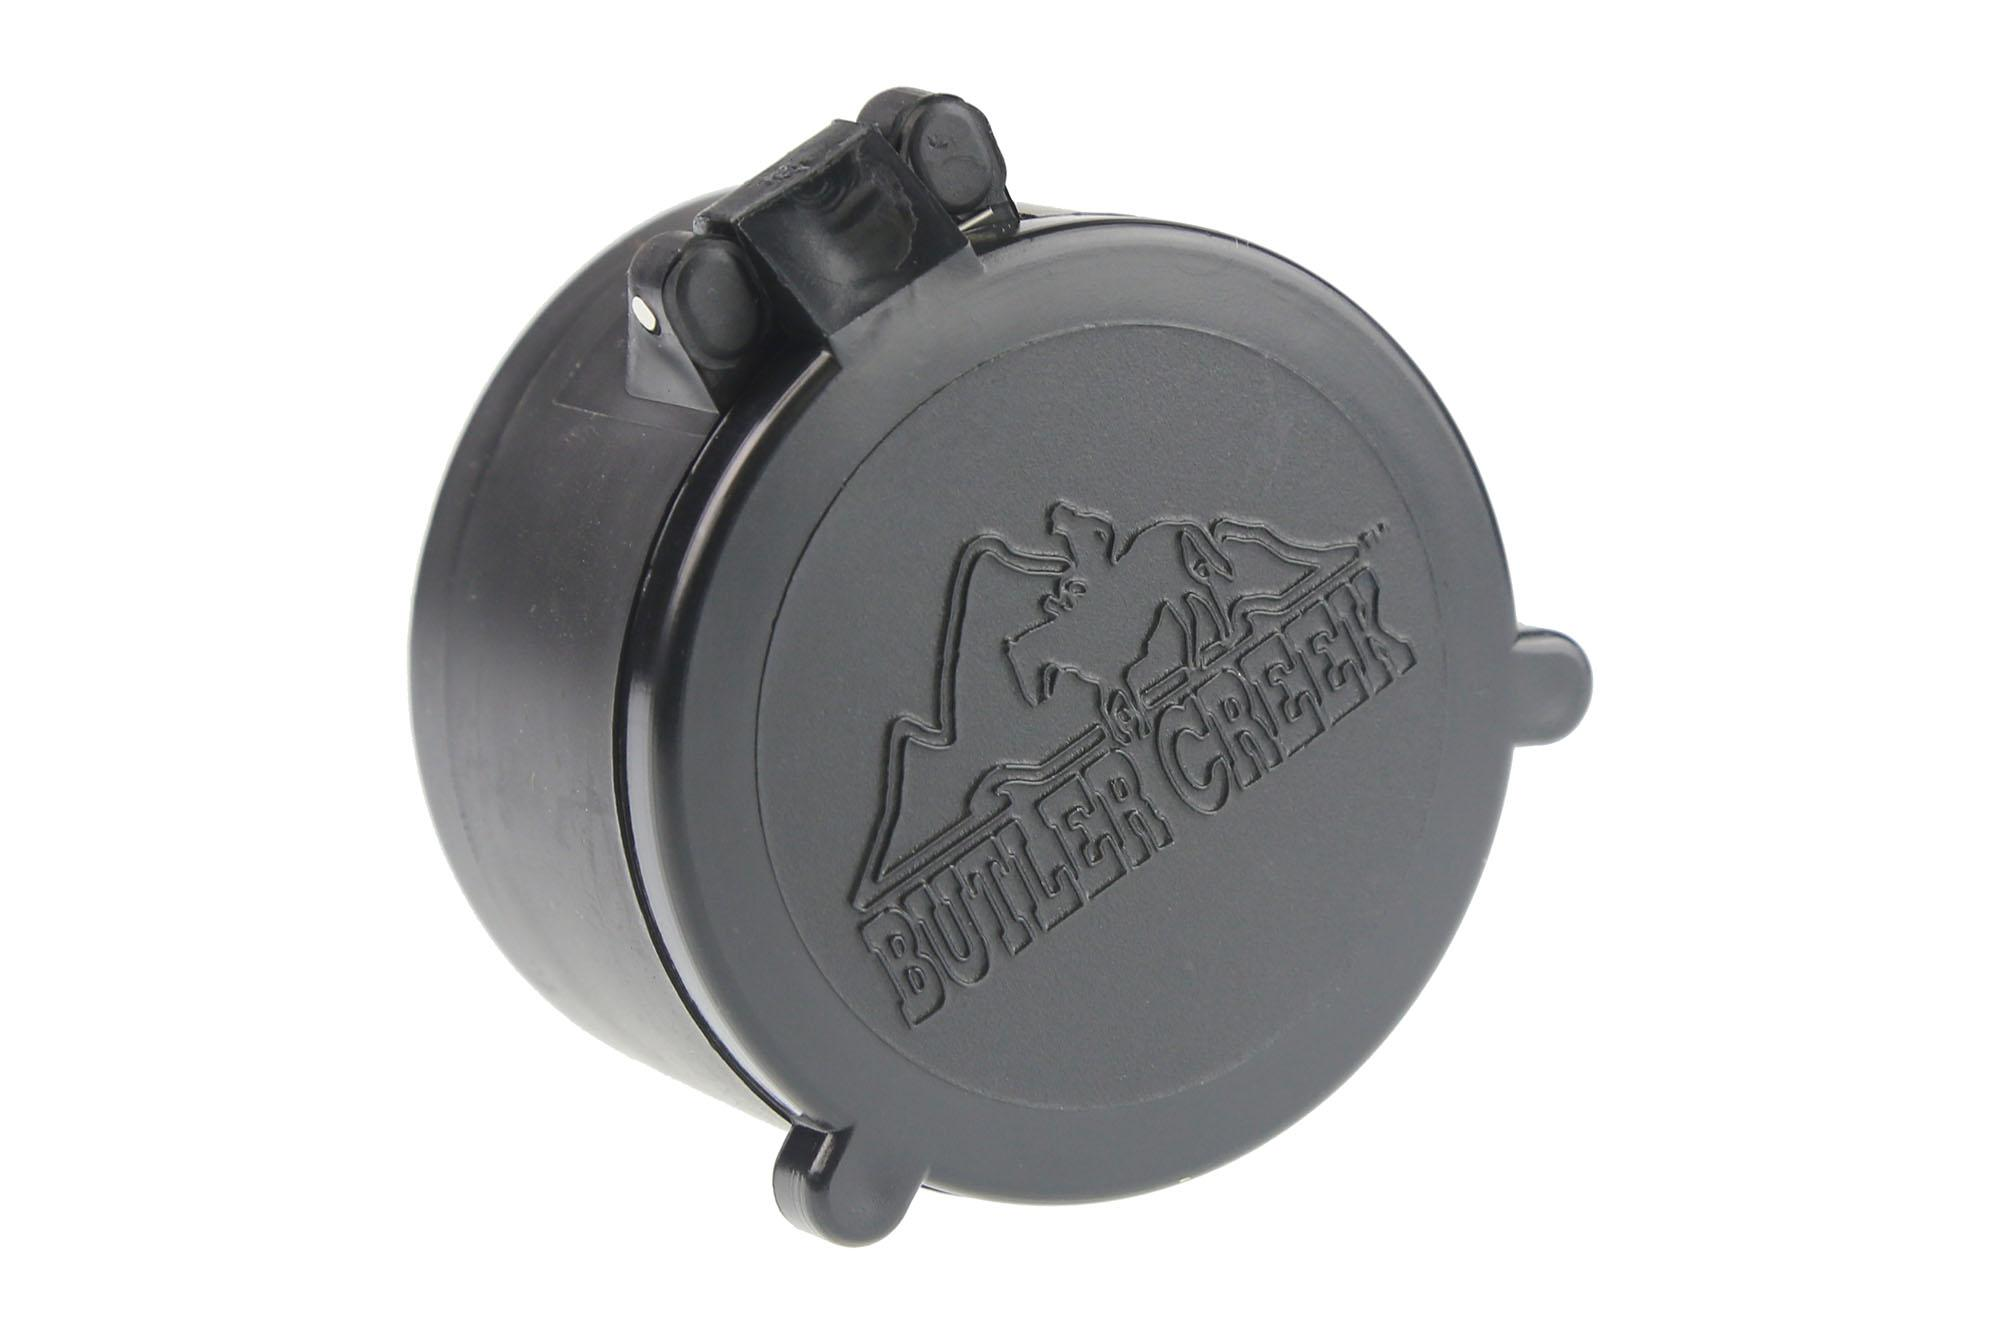 Butler Creek Flip Up Scope Cover 31 Objective